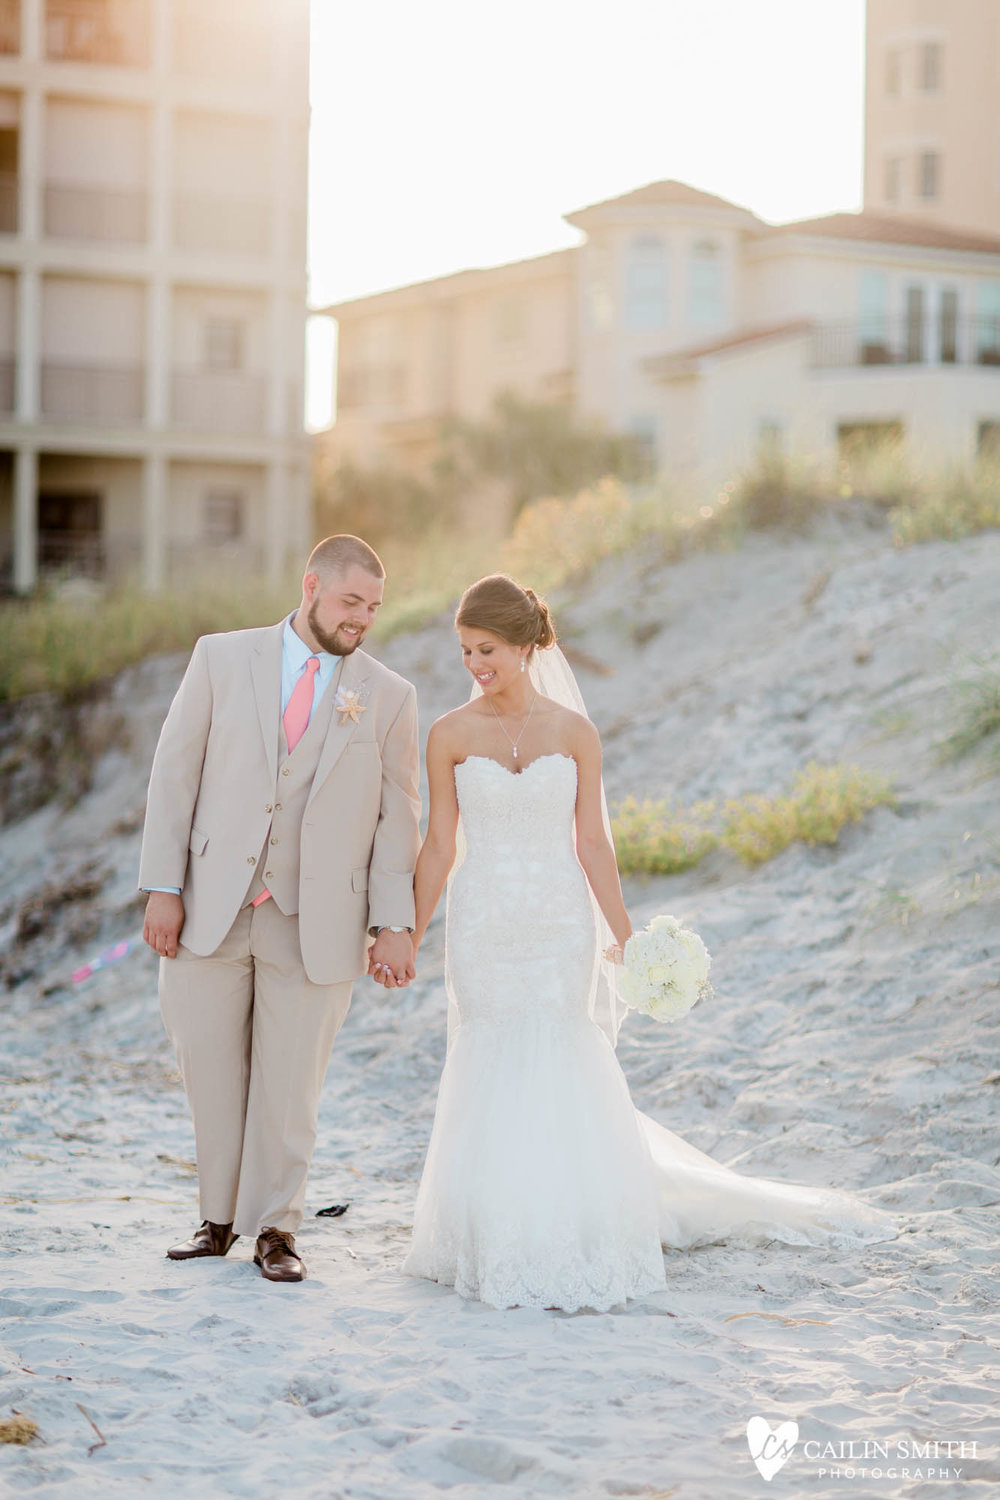 Elyssa_Caleb_Jacksonville_Beach_Wedding_0053.jpg